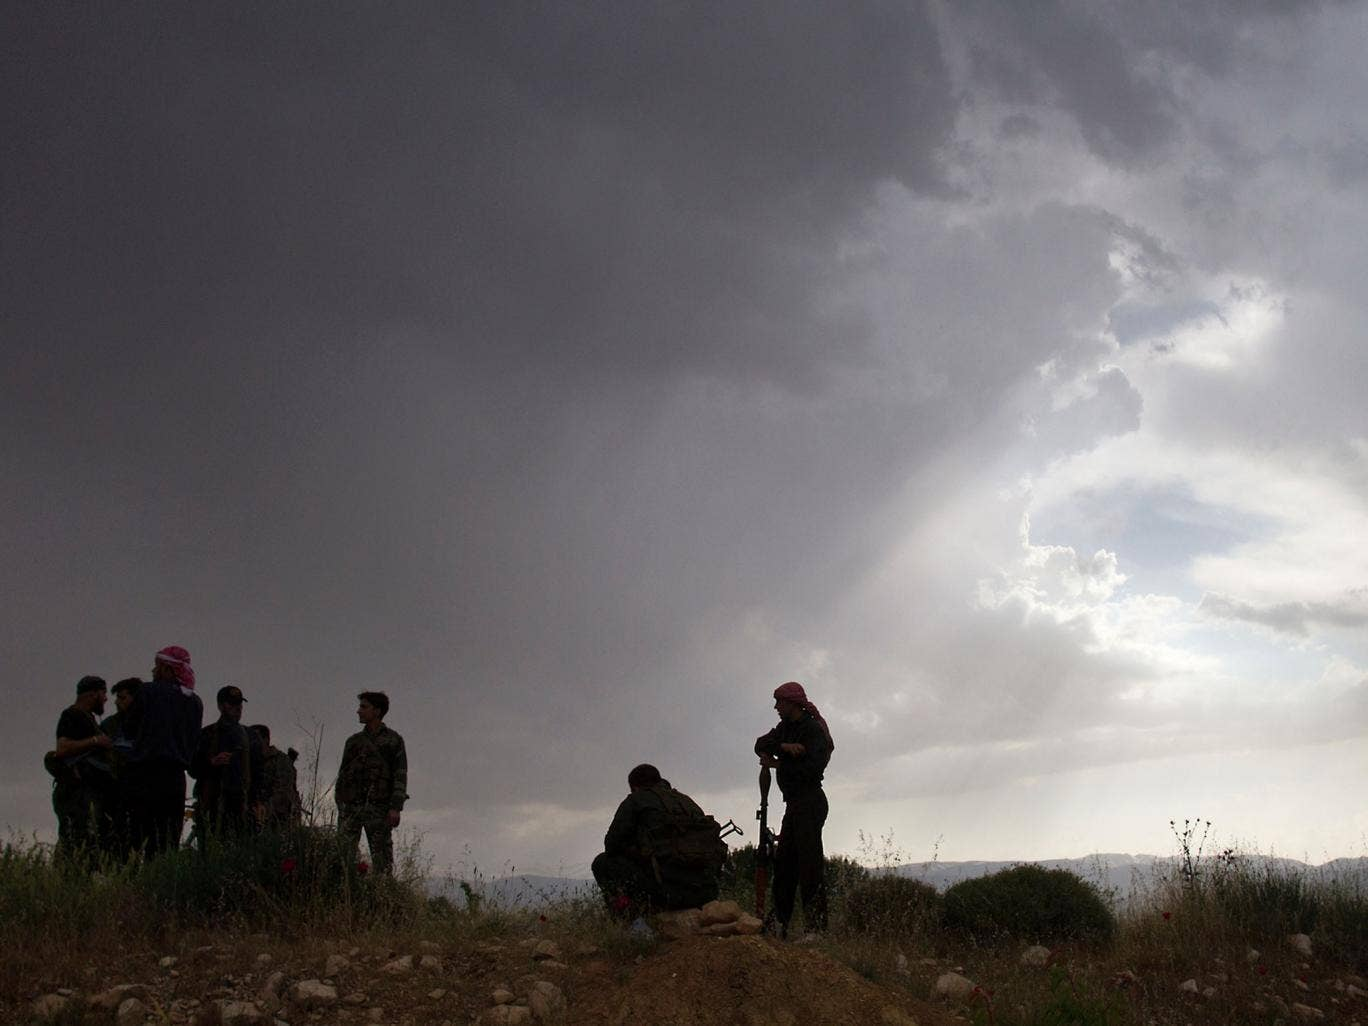 Syrian rebels: Starting to use missiles